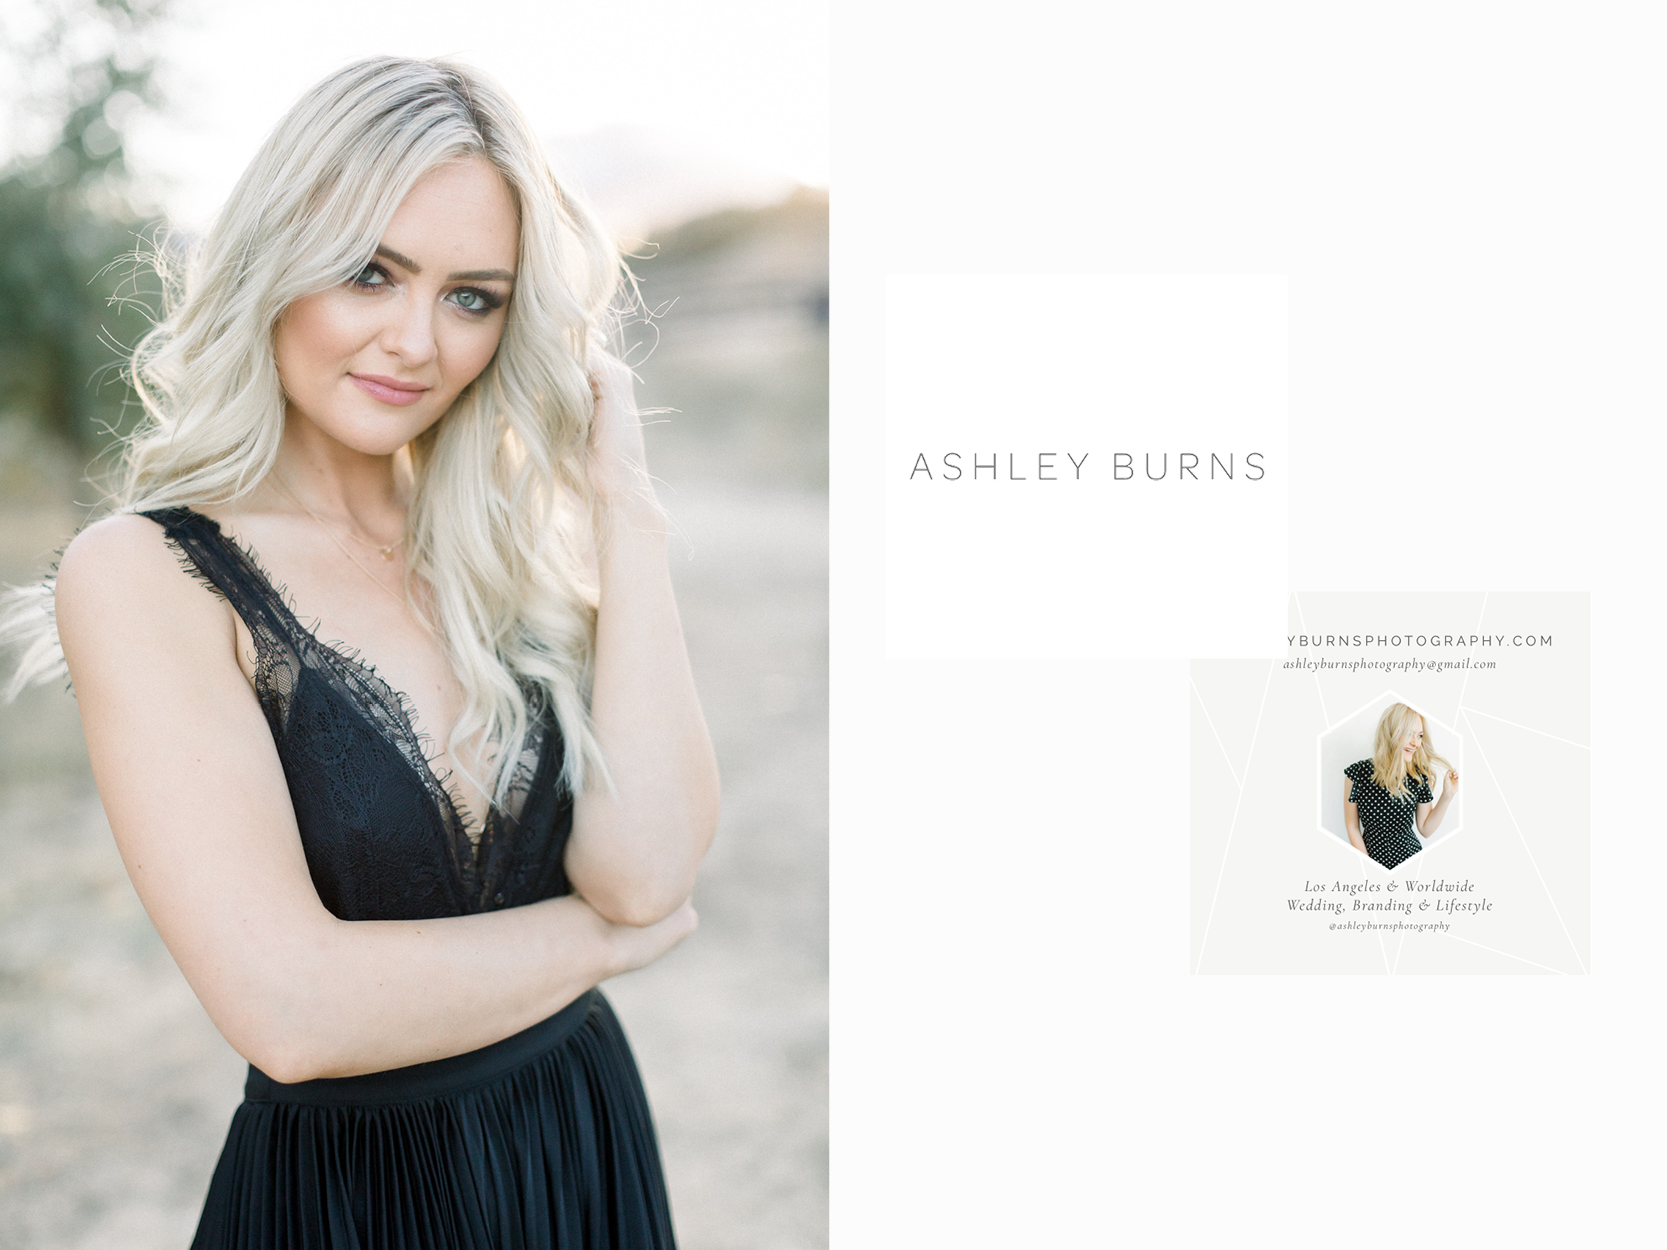 Ashley Burns is a wedding photographer in the LA area with modern and simple branding by Emma Rose Company.  Get inspired with her custom Squarespace website design by Emma Rose.  Custom web design for photographers.3.jpg